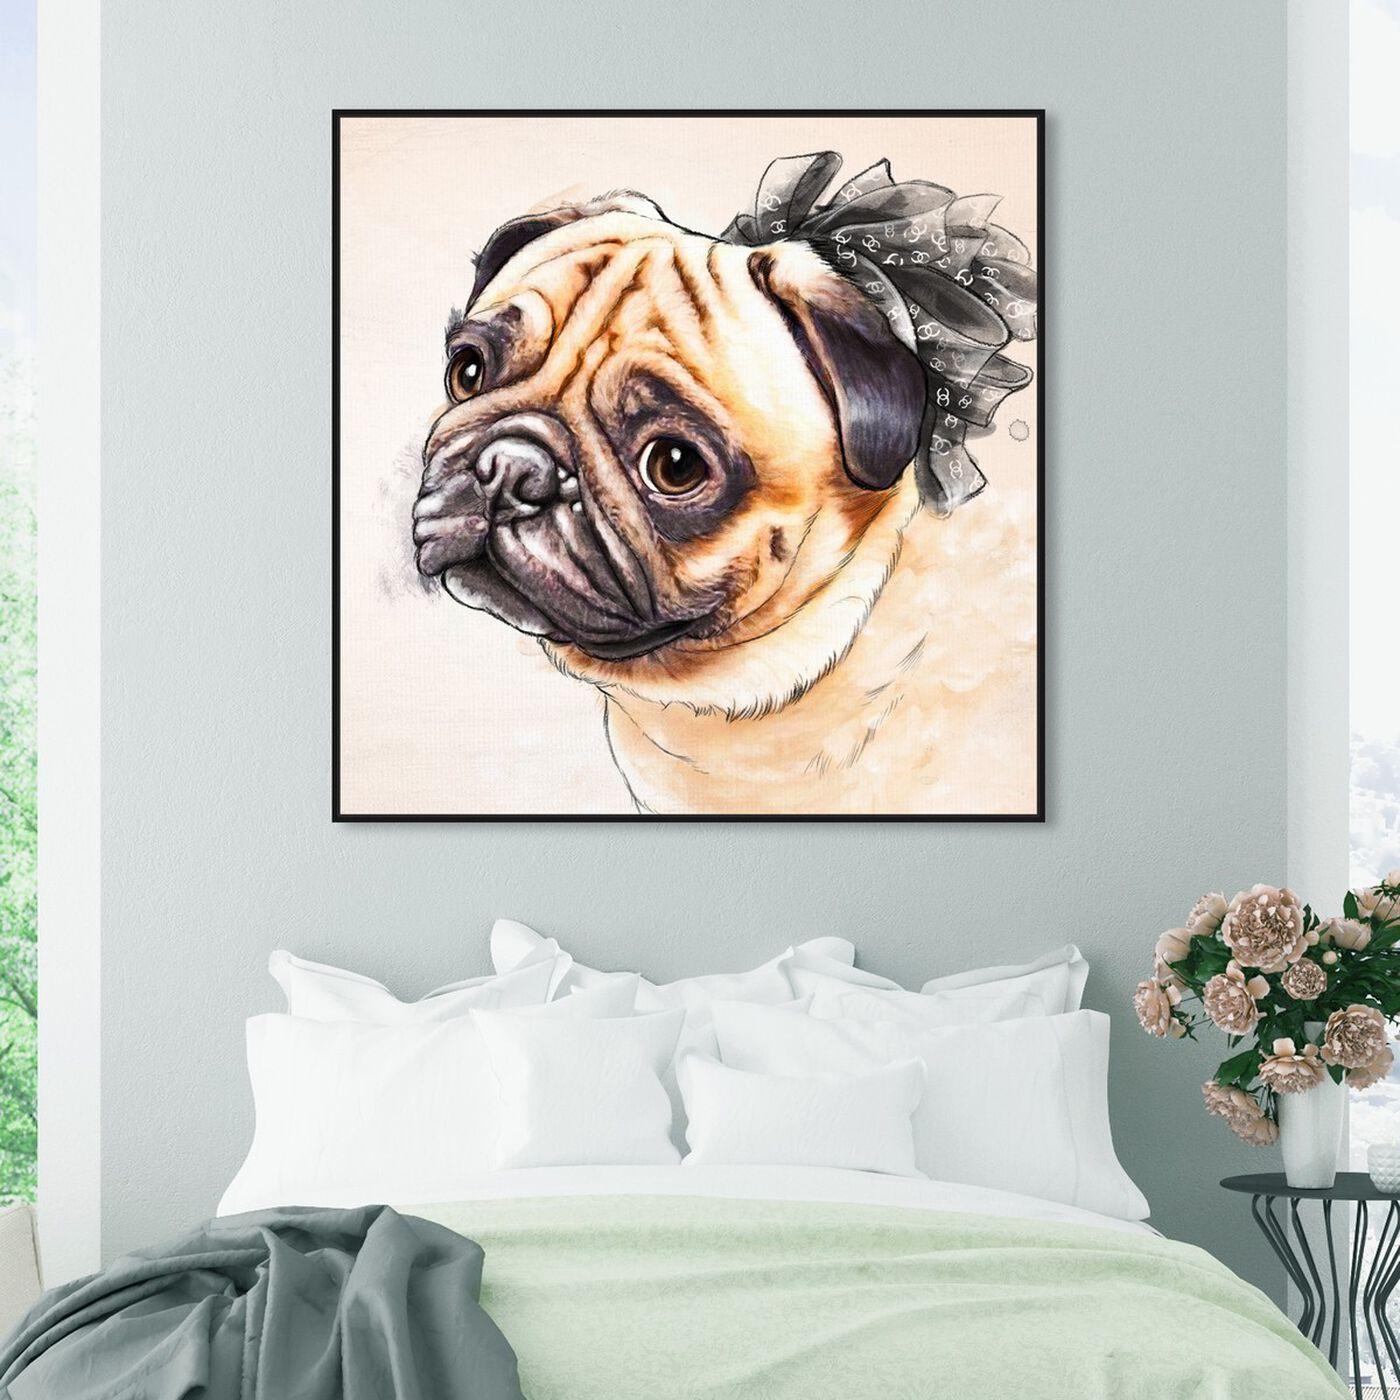 Hanging view of Watercolor Pug featuring animals and dogs and puppies art.